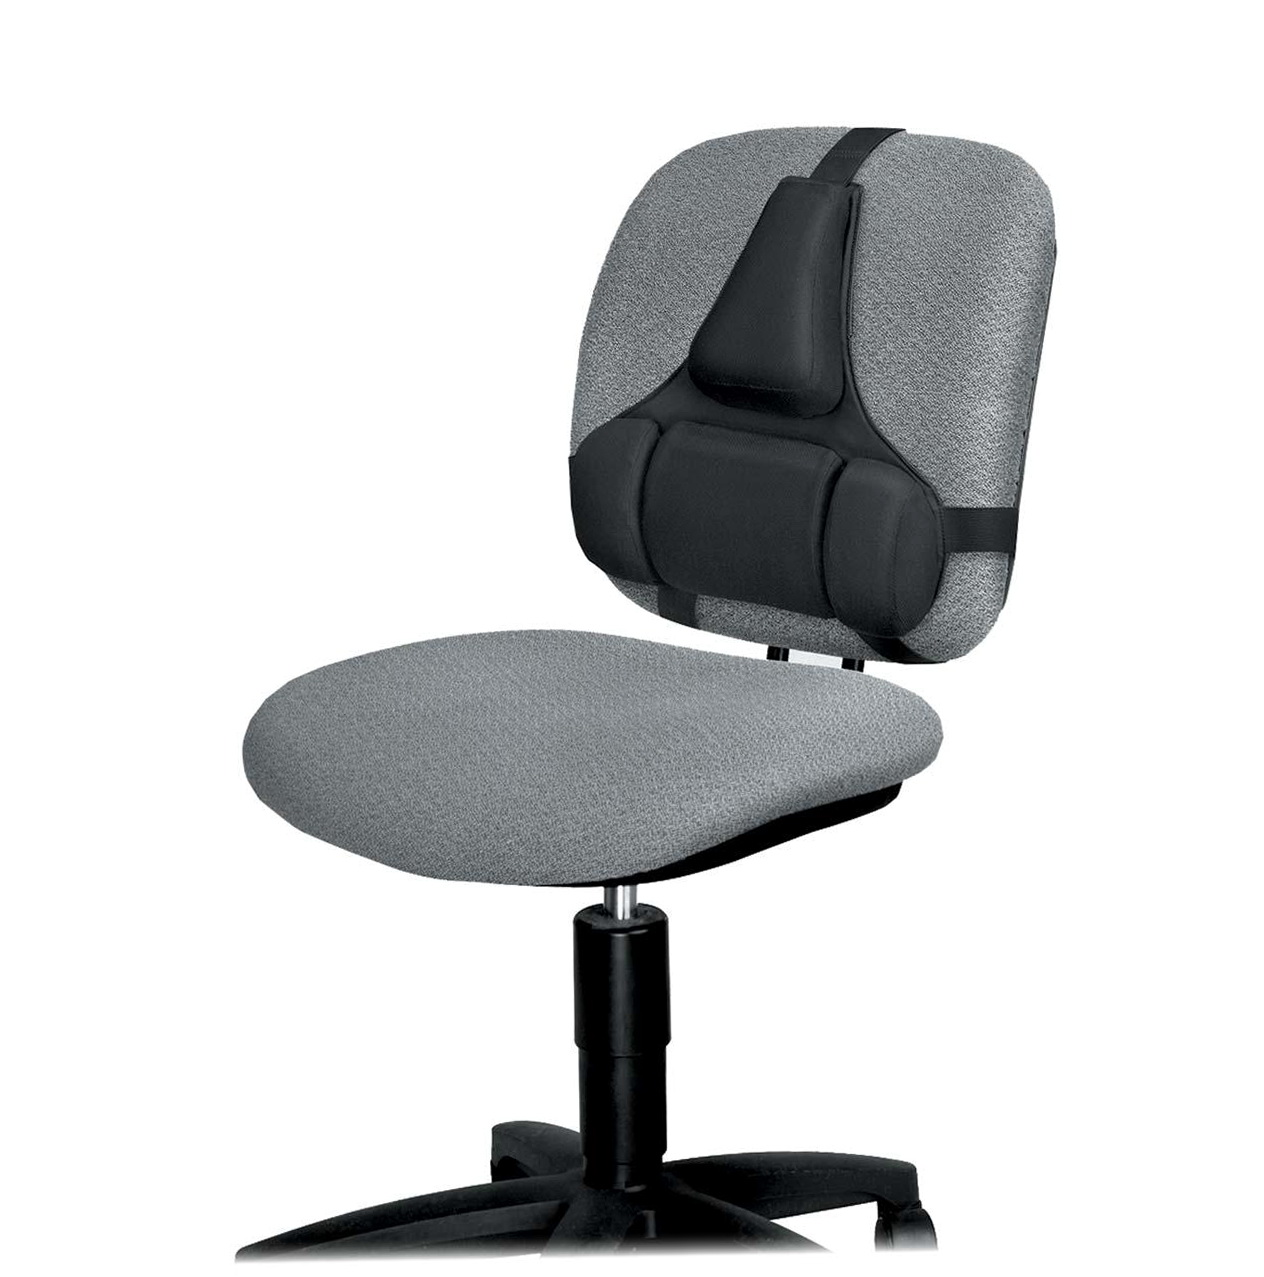 Seat Cushions For Office Chairs Walmart